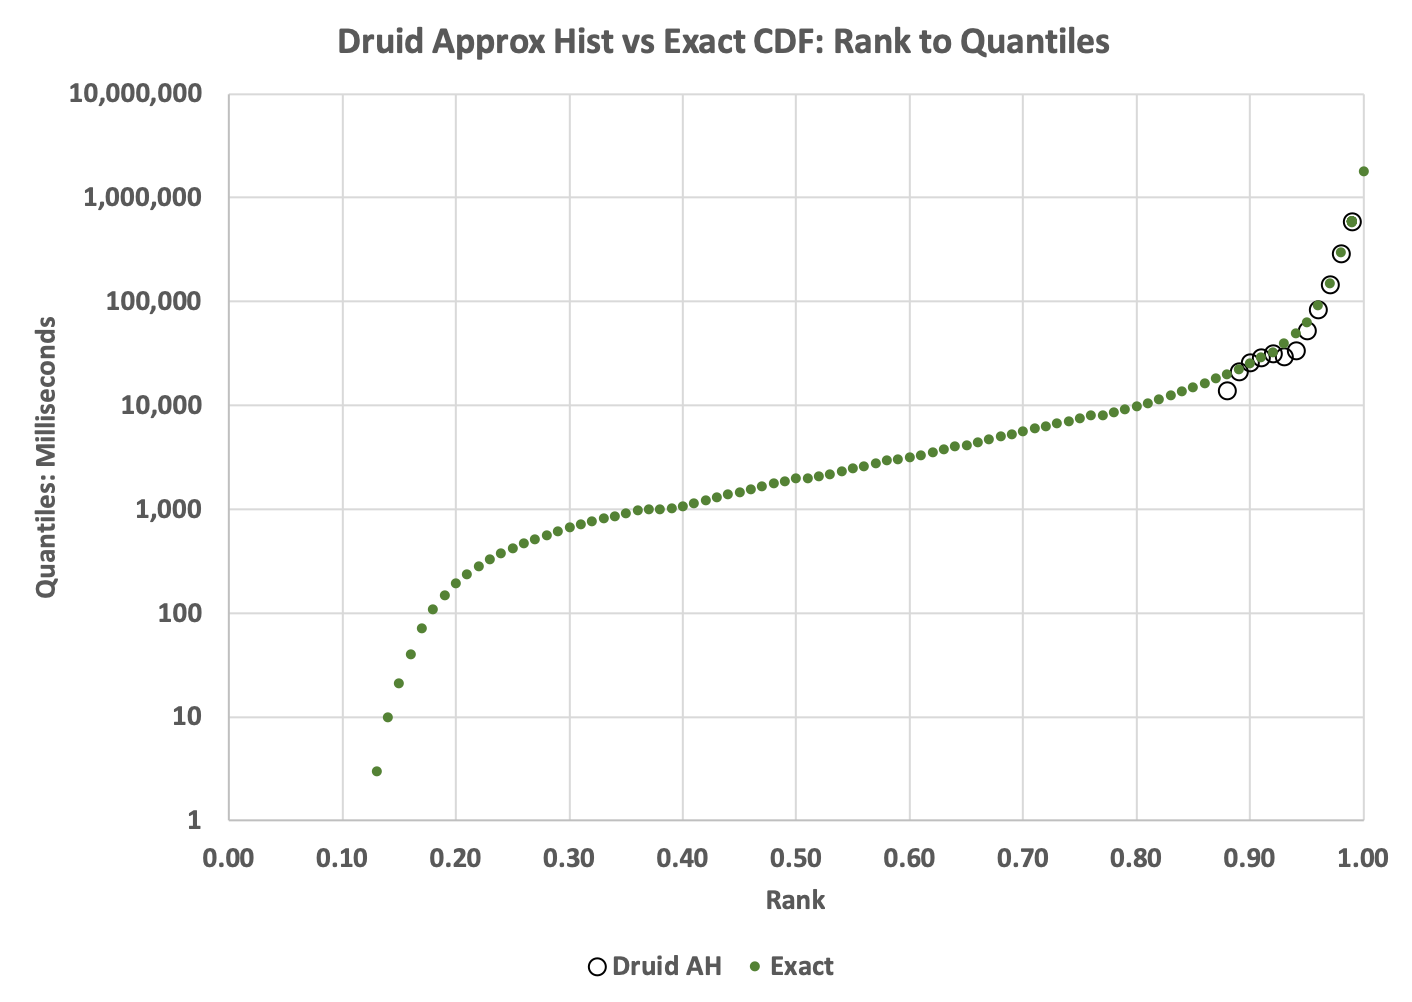 Druid Approx Hist CDF of ranks to quantiles